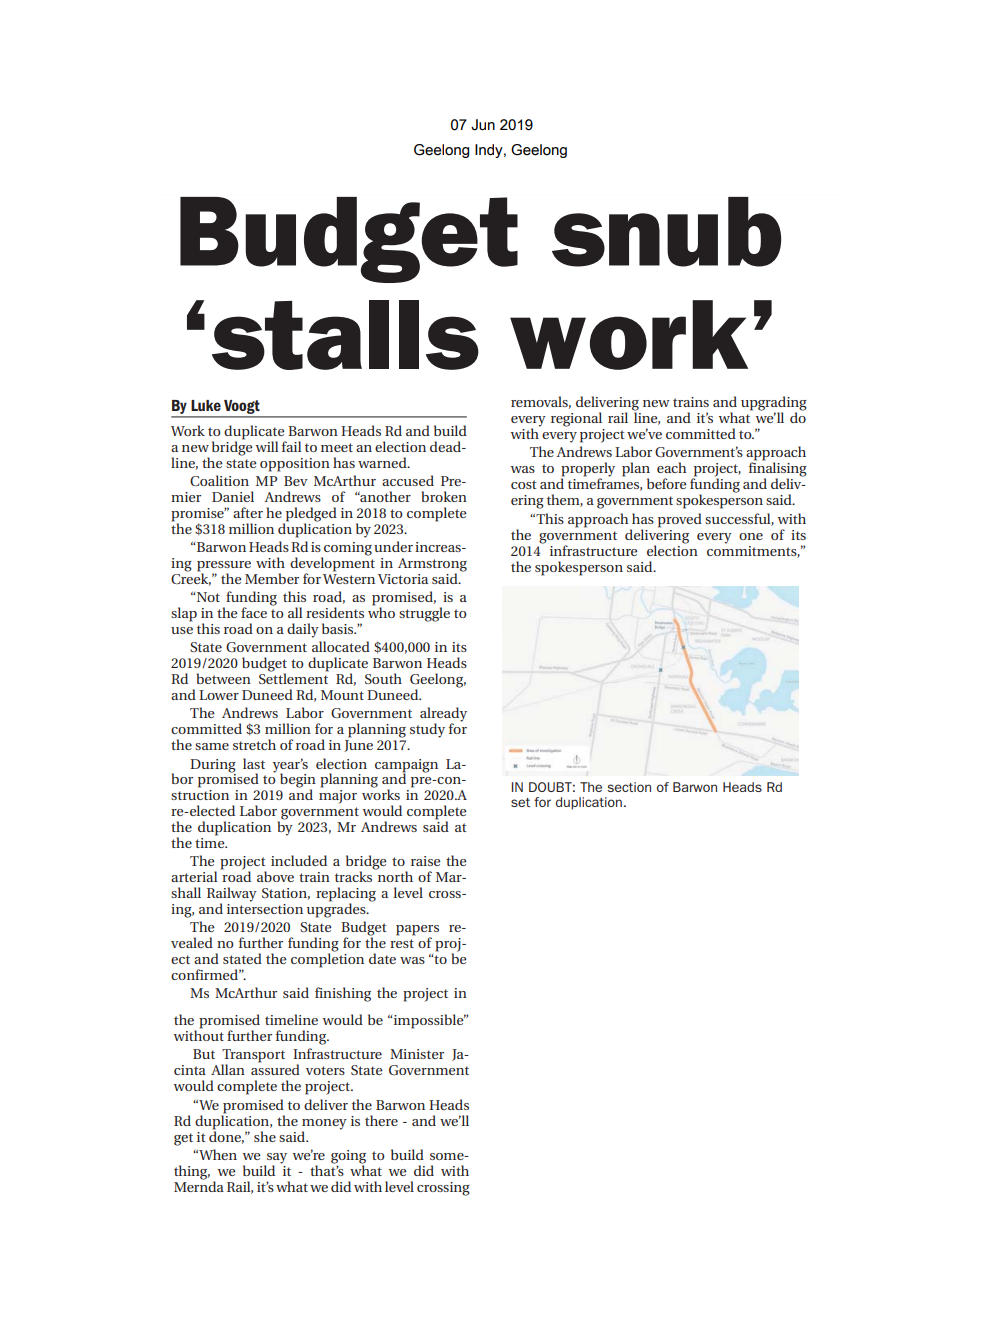 07062019 Budget snub 'stalls work' - Geelong Indy.png